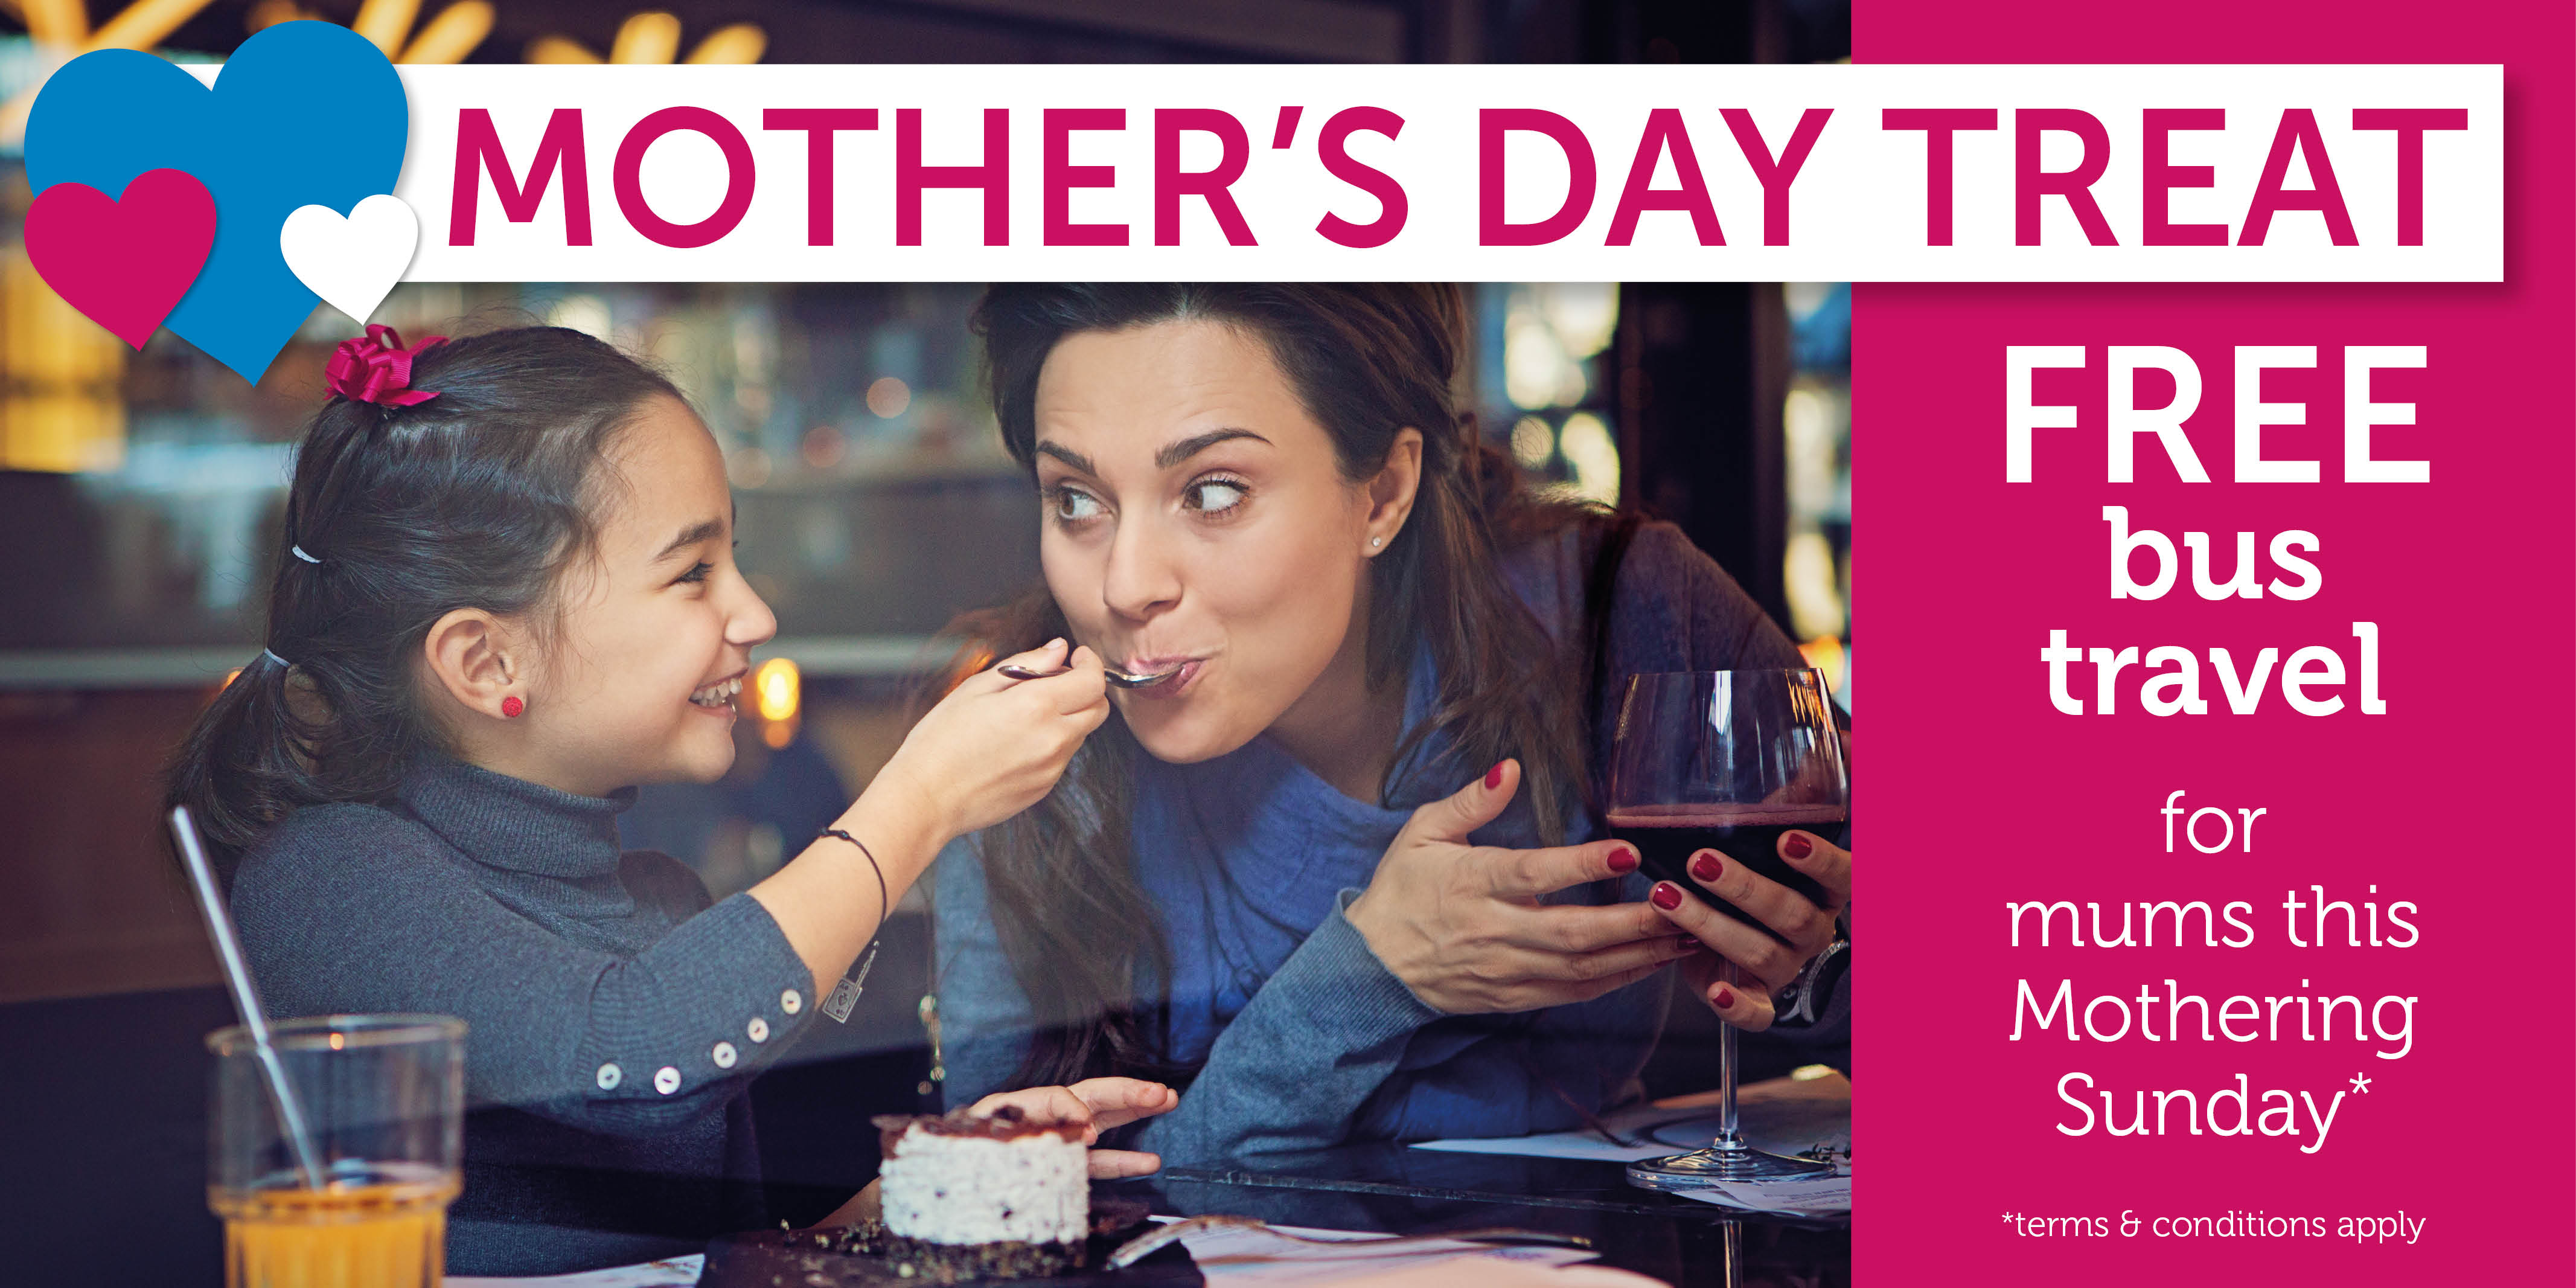 Mum's go free on Mother's Day!